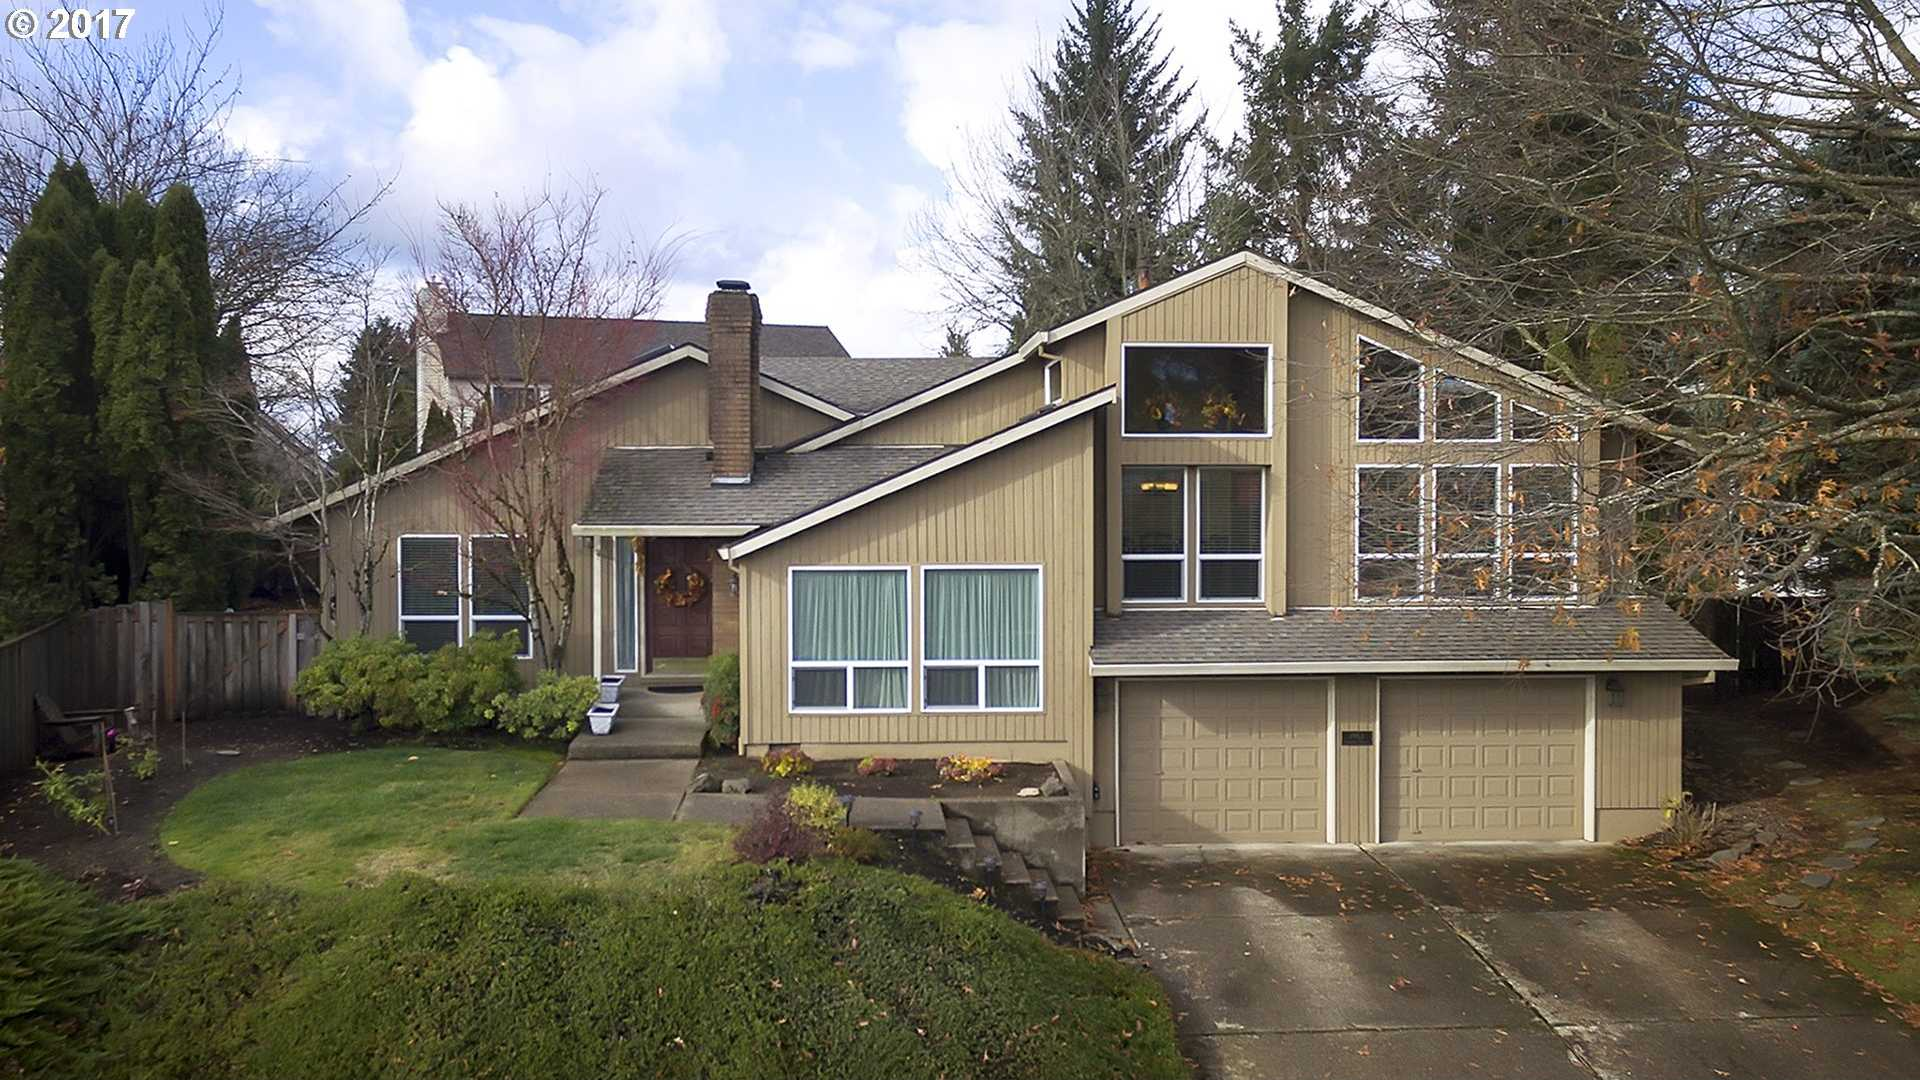 $547,900 - 4Br/3Ba -  for Sale in West Linn